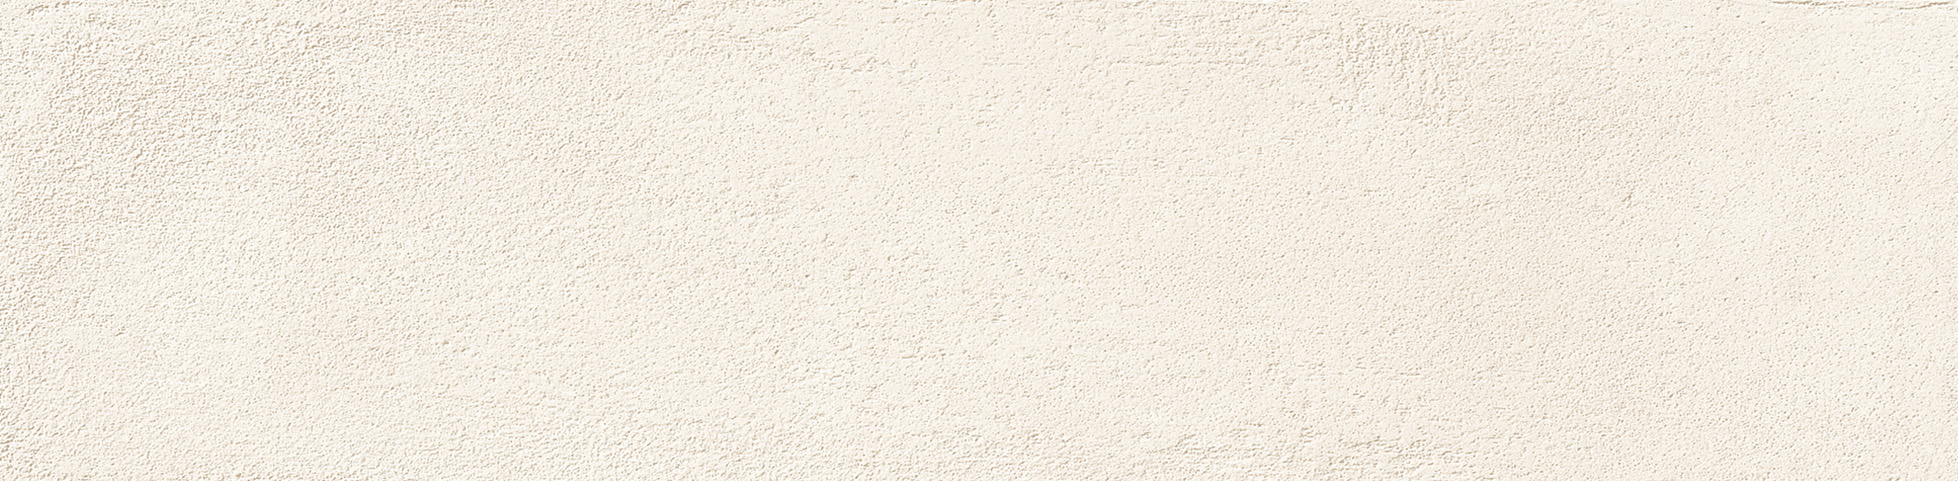 Bricktrend Almond by Marquis Collection 2